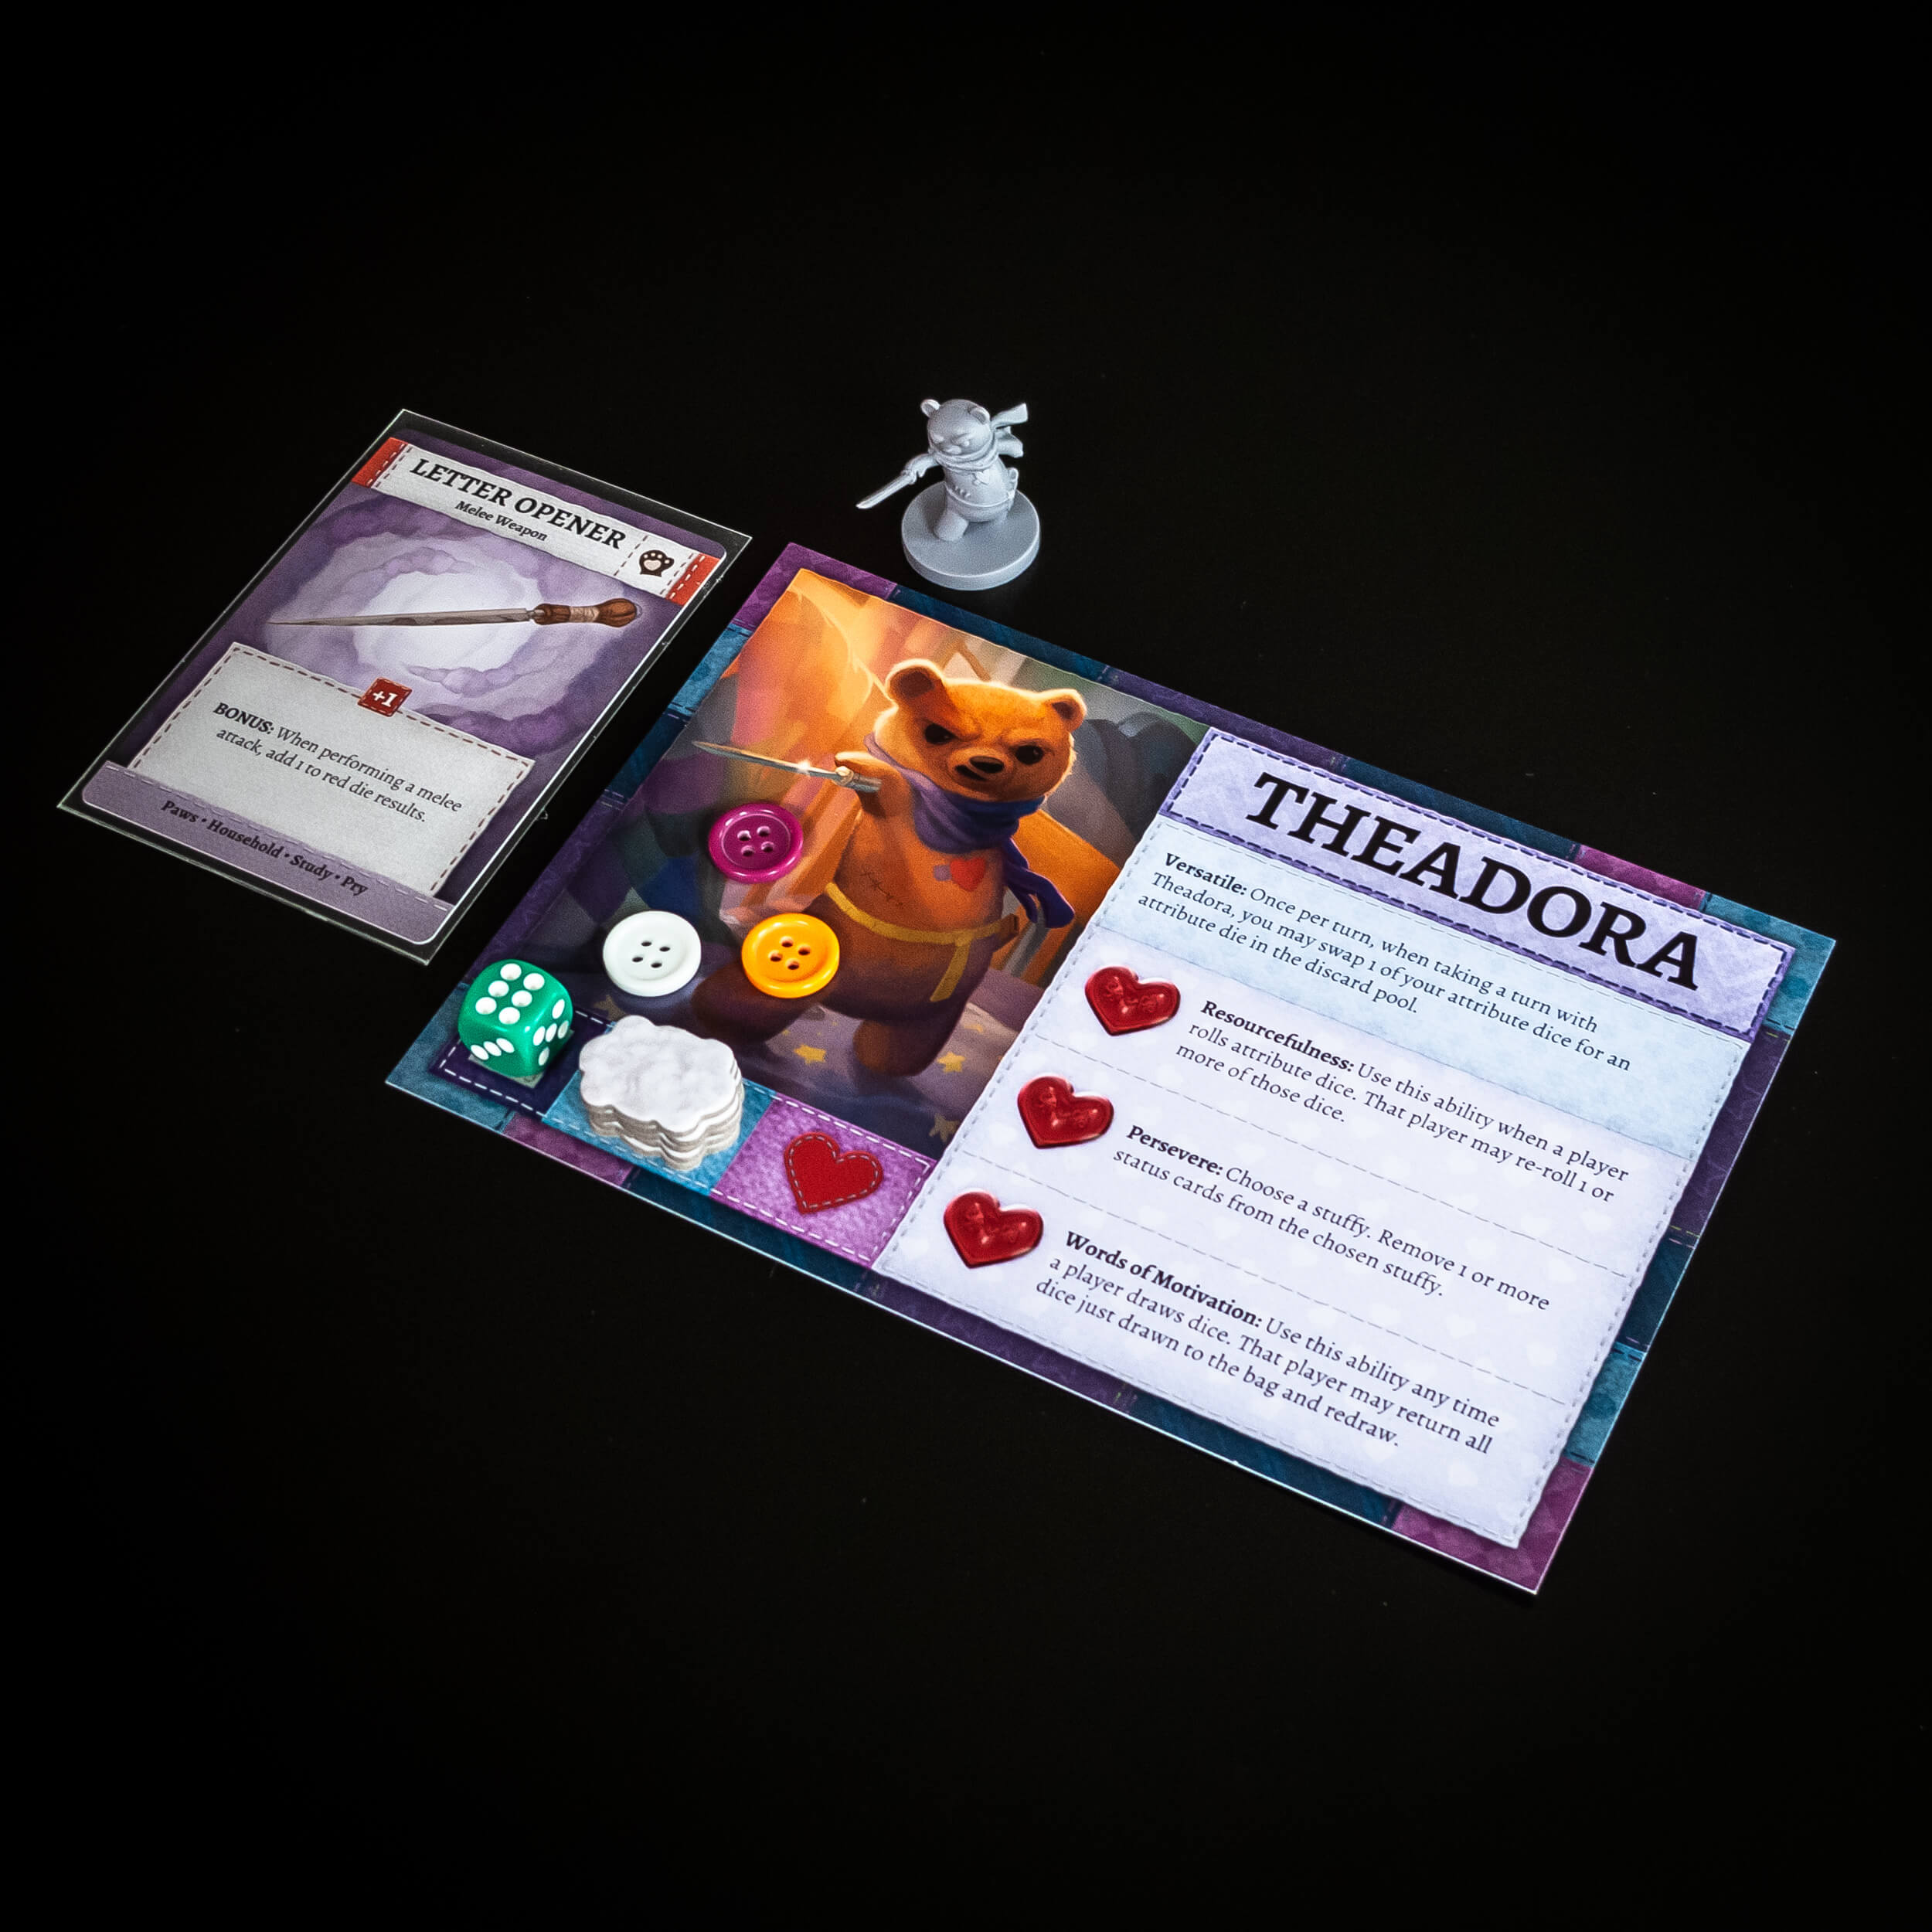 Theadora's character card showing a die in reserve, buttons, and her stack of stuffing